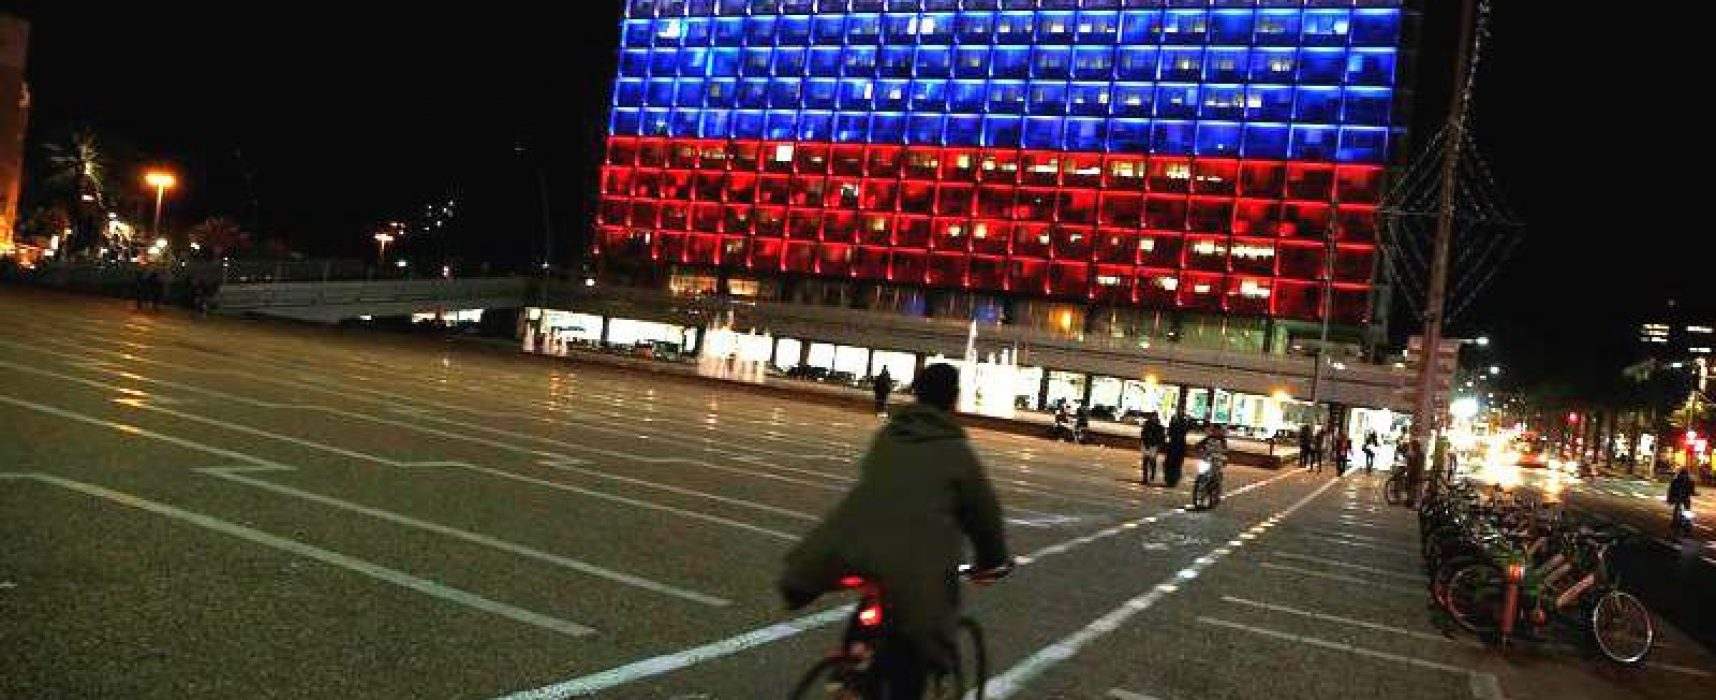 Terror in Russia and the West: A Need for Compassion